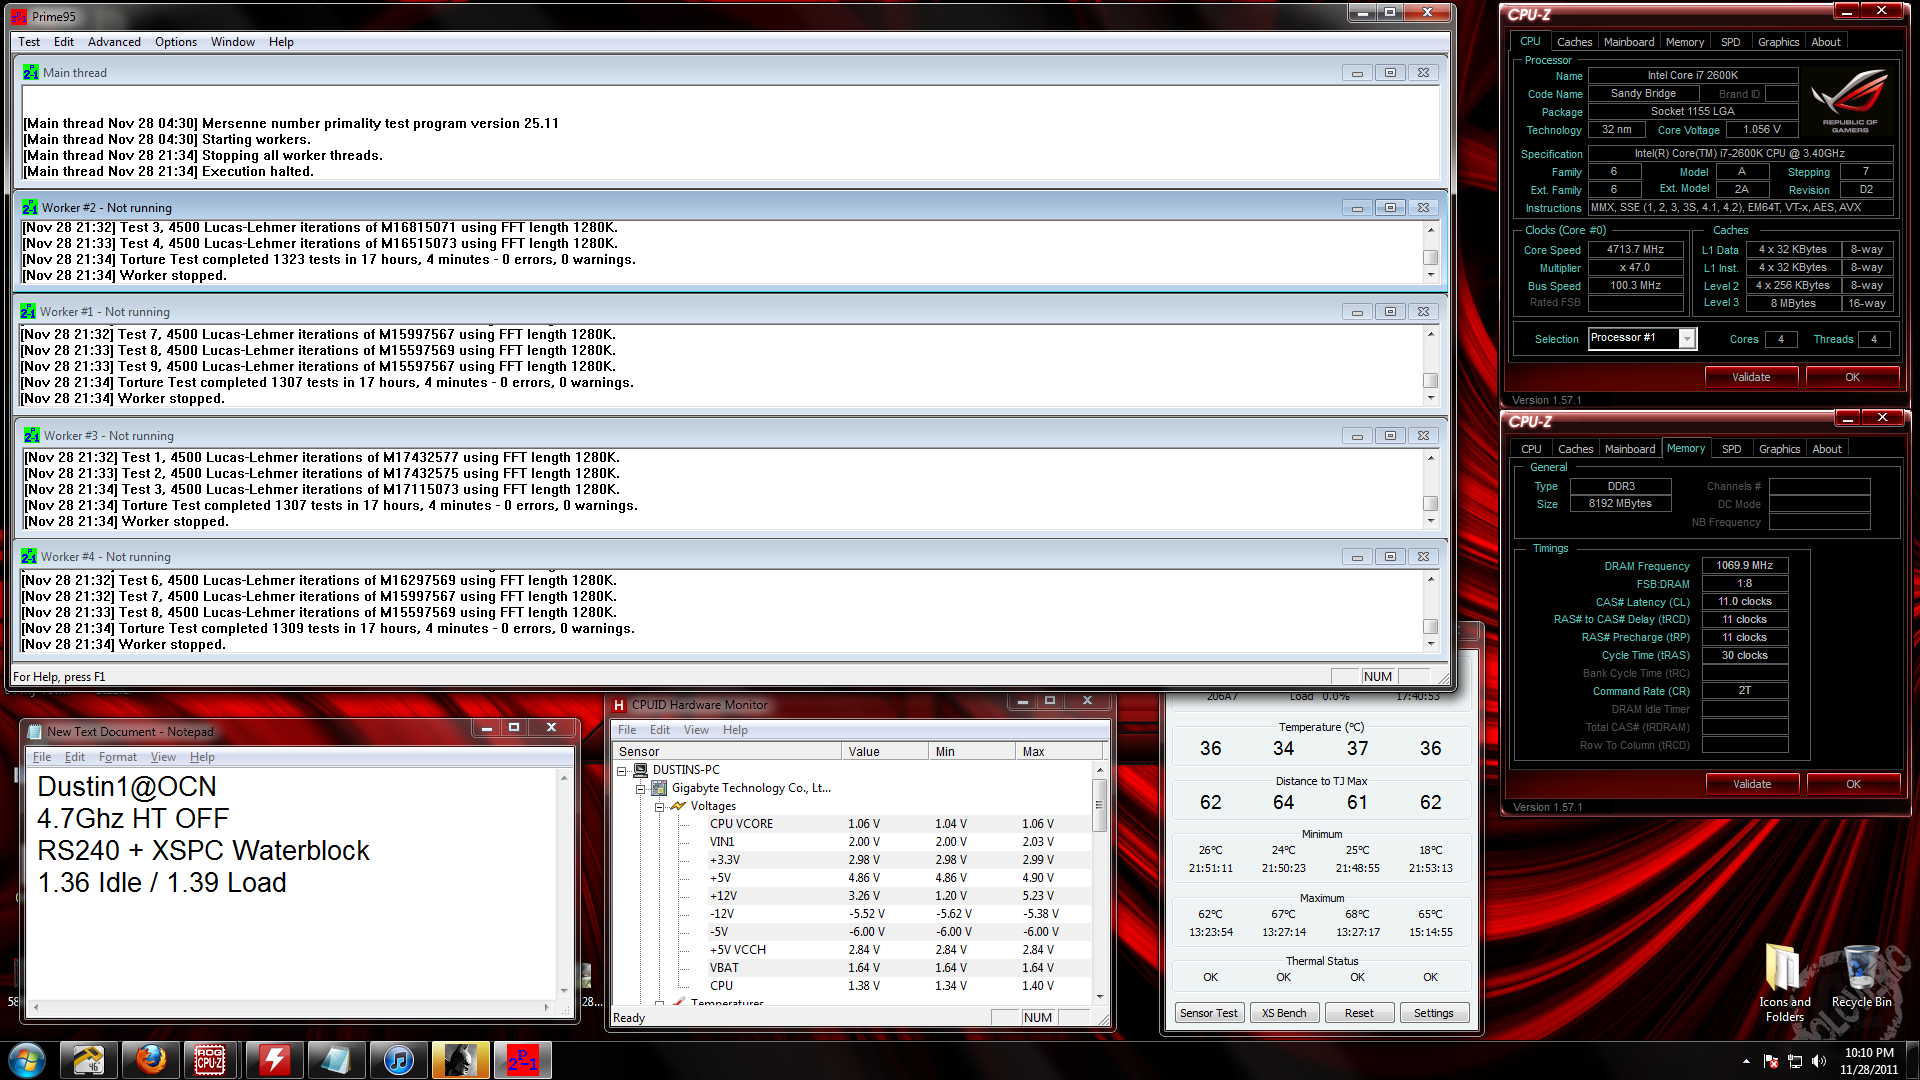 17 hours of Prime95 @ 4.7Ghz with 1.36 / 1.39 vcore. HT OFF.